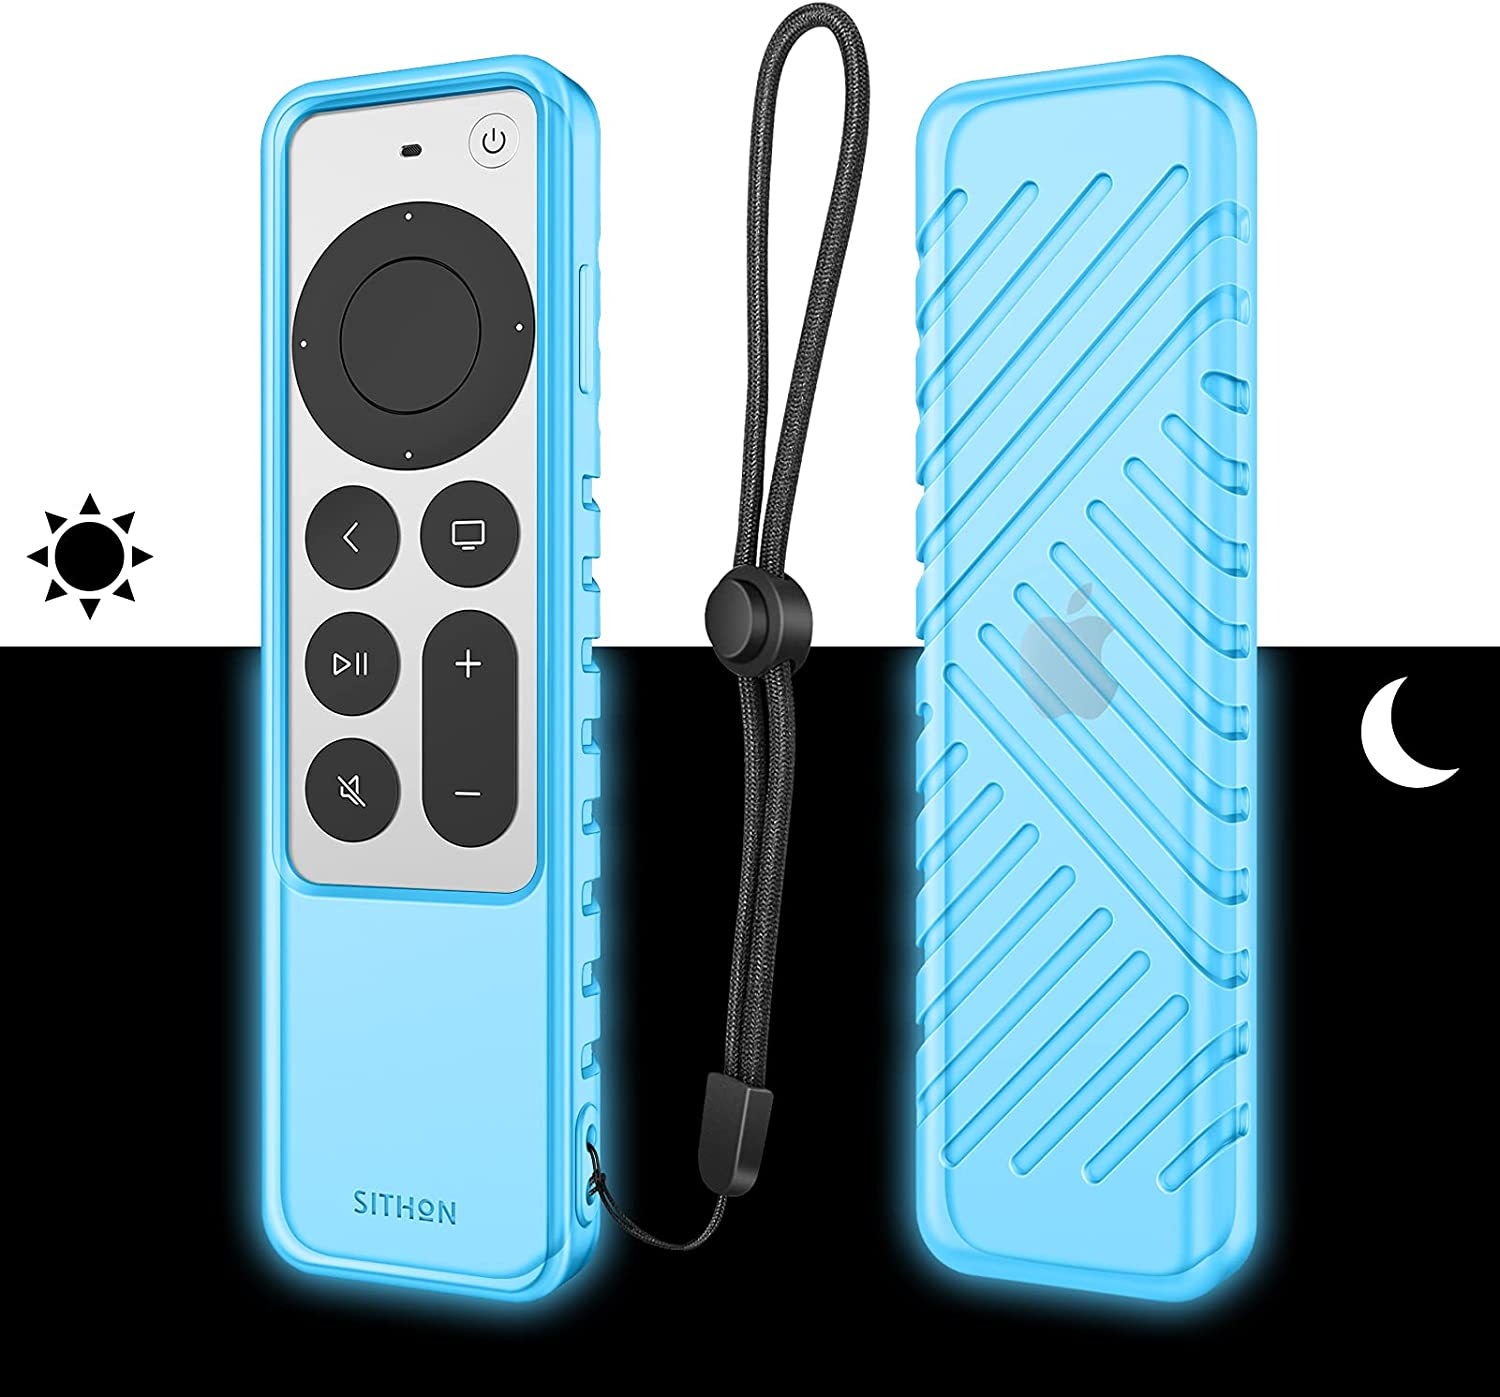 SITHON Silicone Case for Apple TV 4K 2021 Remote Controller, Lightweight Shockproof Anti Slip Protective Cover with Lanyard Strap for Apple TV 4K Siri/HD Remote (2nd Gen), Nightglow SkyBlue